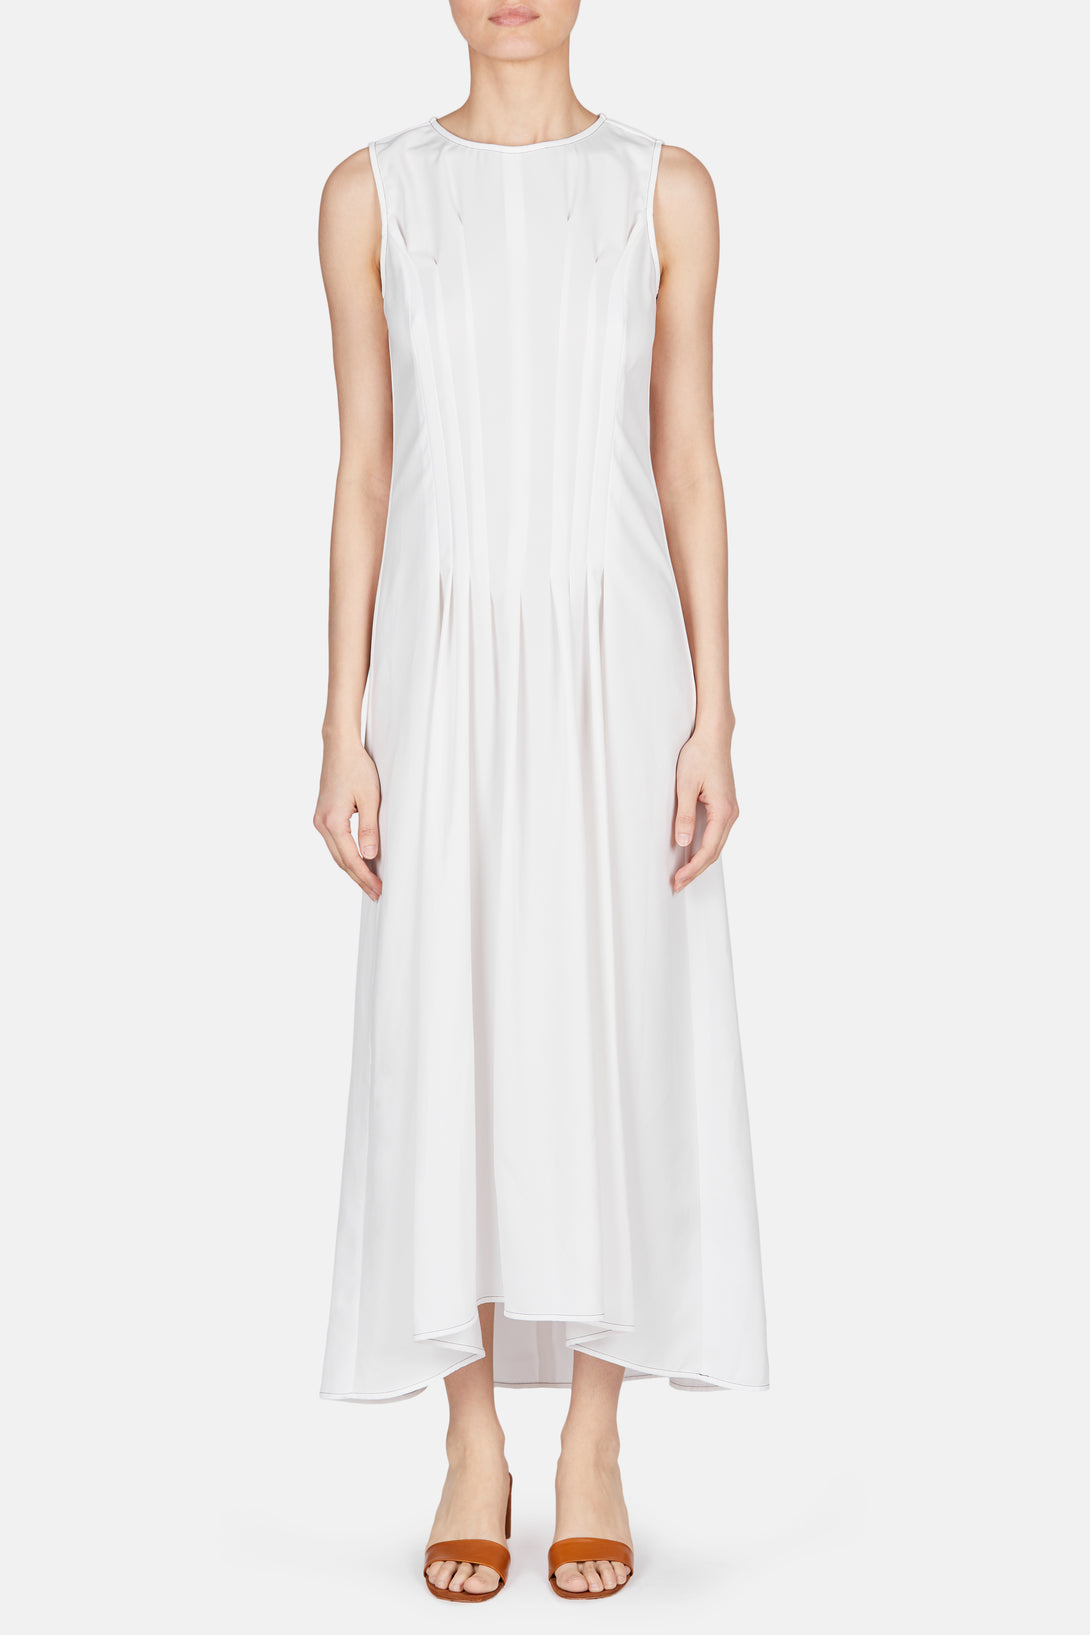 Sleeveless Front Release Pleat Dress - Off White